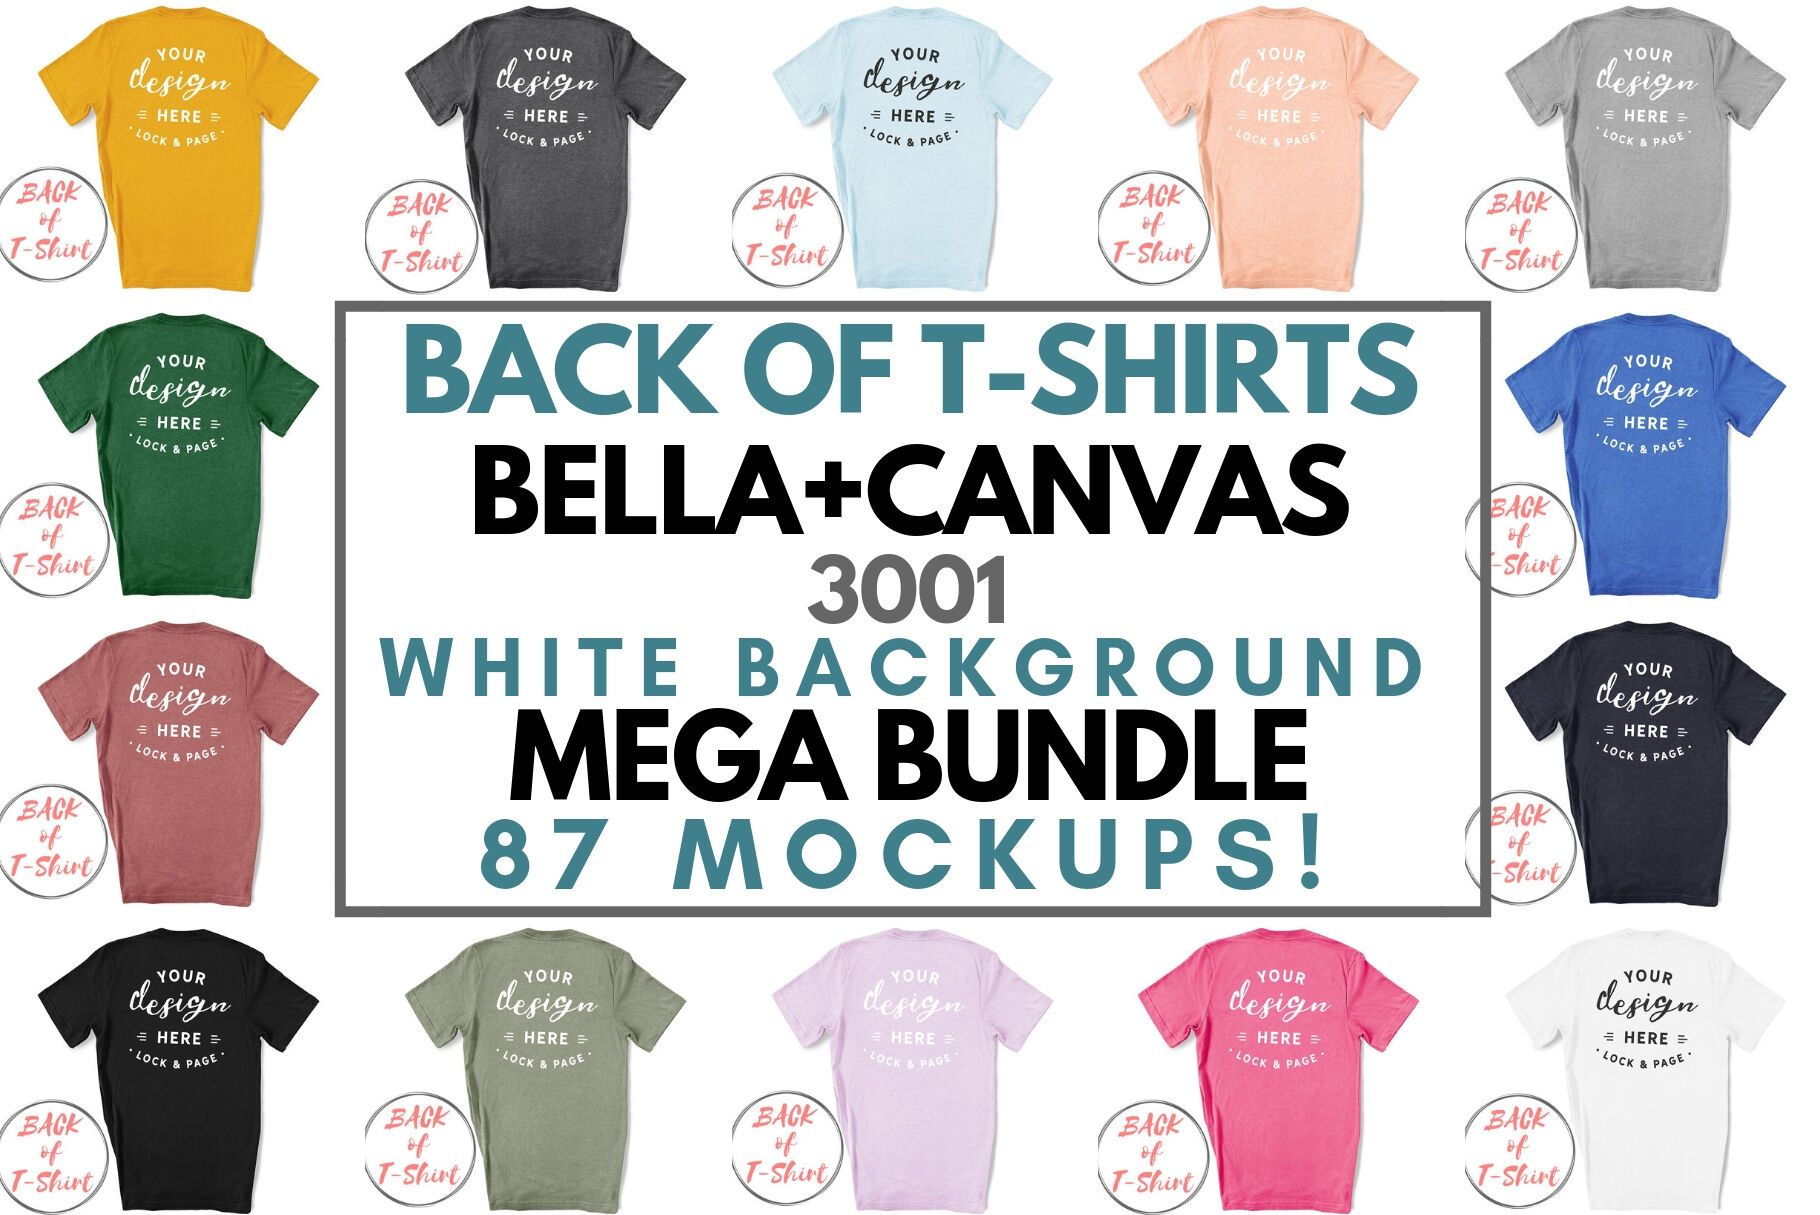 Back Of T Shirt Bella Canvas 3001 Unisex Mockup Mega Bundle On White By Lock And Page Thehungry In 2020 Psd Mockup Template Free Psd Mockups Templates Mockup Template